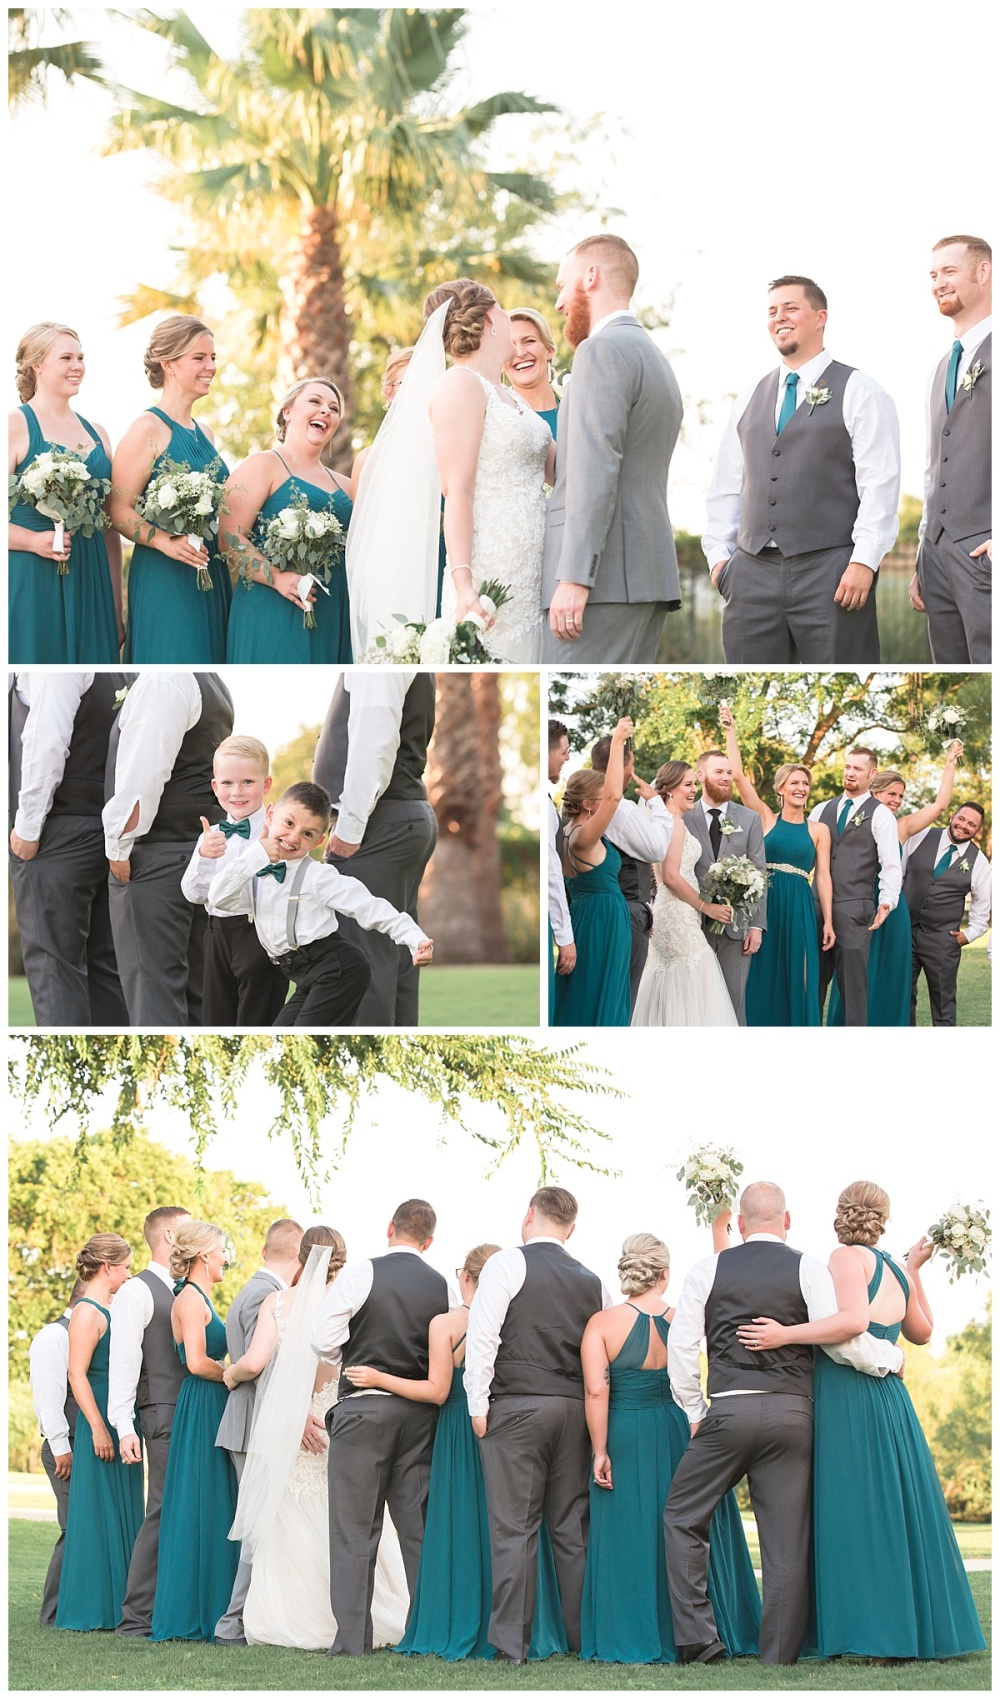 Carly-Barton-Photography-Wedding-Photos-Granberry-Hills-Event-Facility-Ryan-Chelsea-San-Antonio-Texas_0052